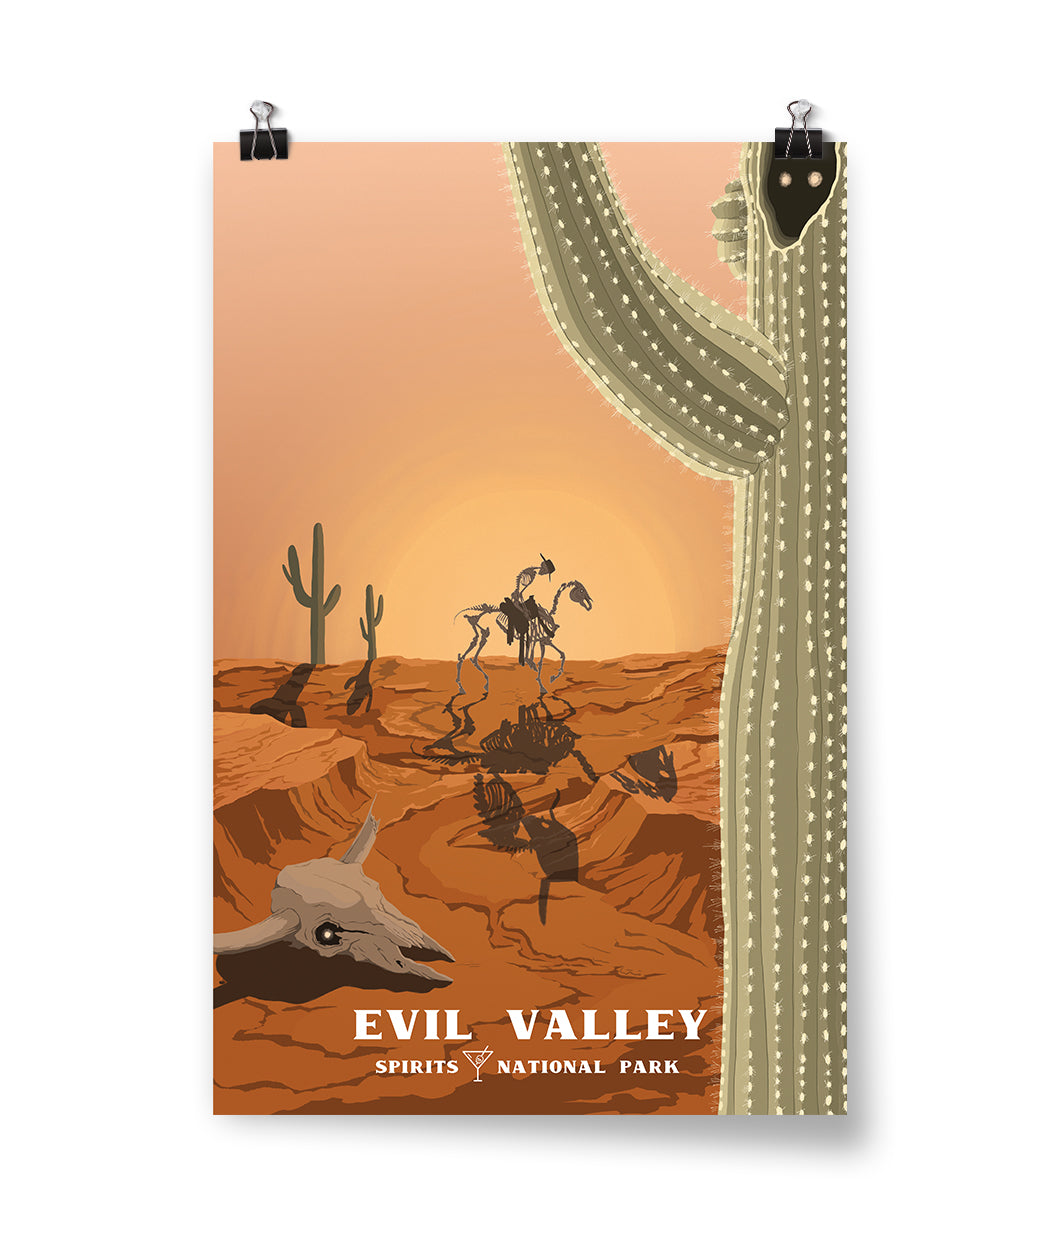 Evil Valley Spirits National Park